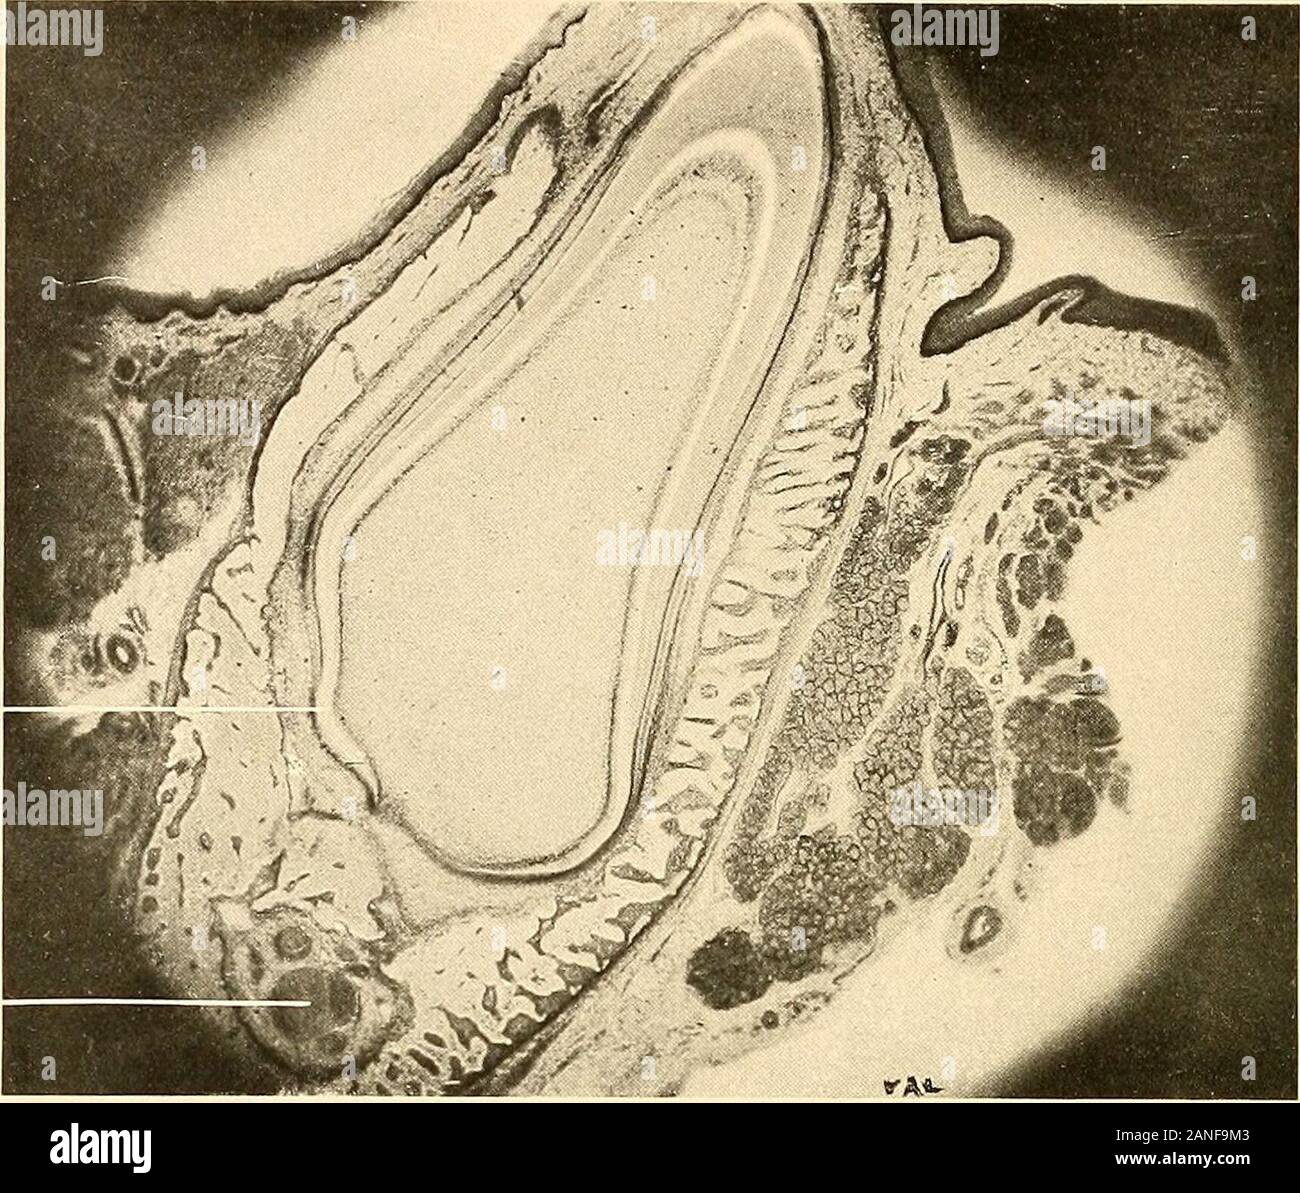 Principles and practice of operative dentistry . ^ -:tr f/. wm 7 1 wi Uc /? n v? ^ Fig. 196.—Longitudinal section of root of tooth in situ, showing relation of the tissues and Sharpeysfibres in the alveolar process. (F. B. Noyes.) 2), dentin ; N, Nasmyths membrane ; C, C, cementum ; F,fibres supporting gingivus ; F1, fibres joining the outer layer of periosteum over the alveolar process(Sharpeys fibres) ; F-, fibres running from cementum to bone ; B, bone or alveolar process. 1 Turning under ofthe base of theenamel-organ. Fig. 197.—Vertical section of a dental follicle, showing the blood-vesse Stock Photo